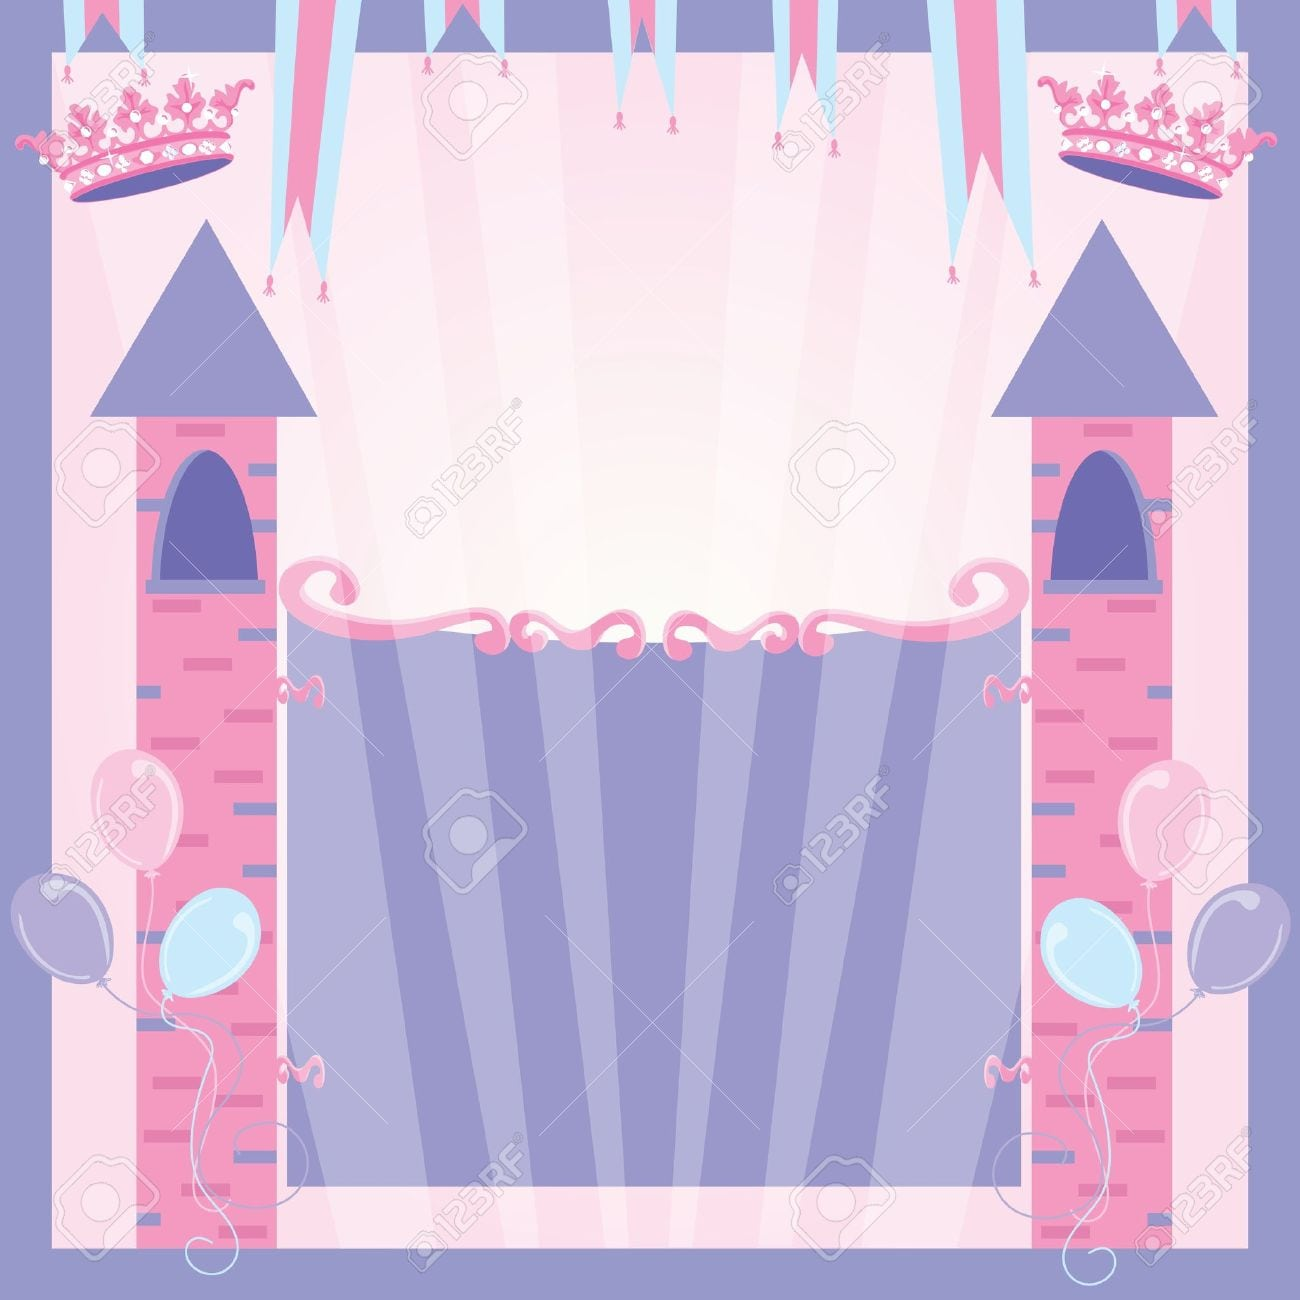 castle invitations birthday party mickey mouse invitations templates princess birthday party invitation castle royalty cliparts